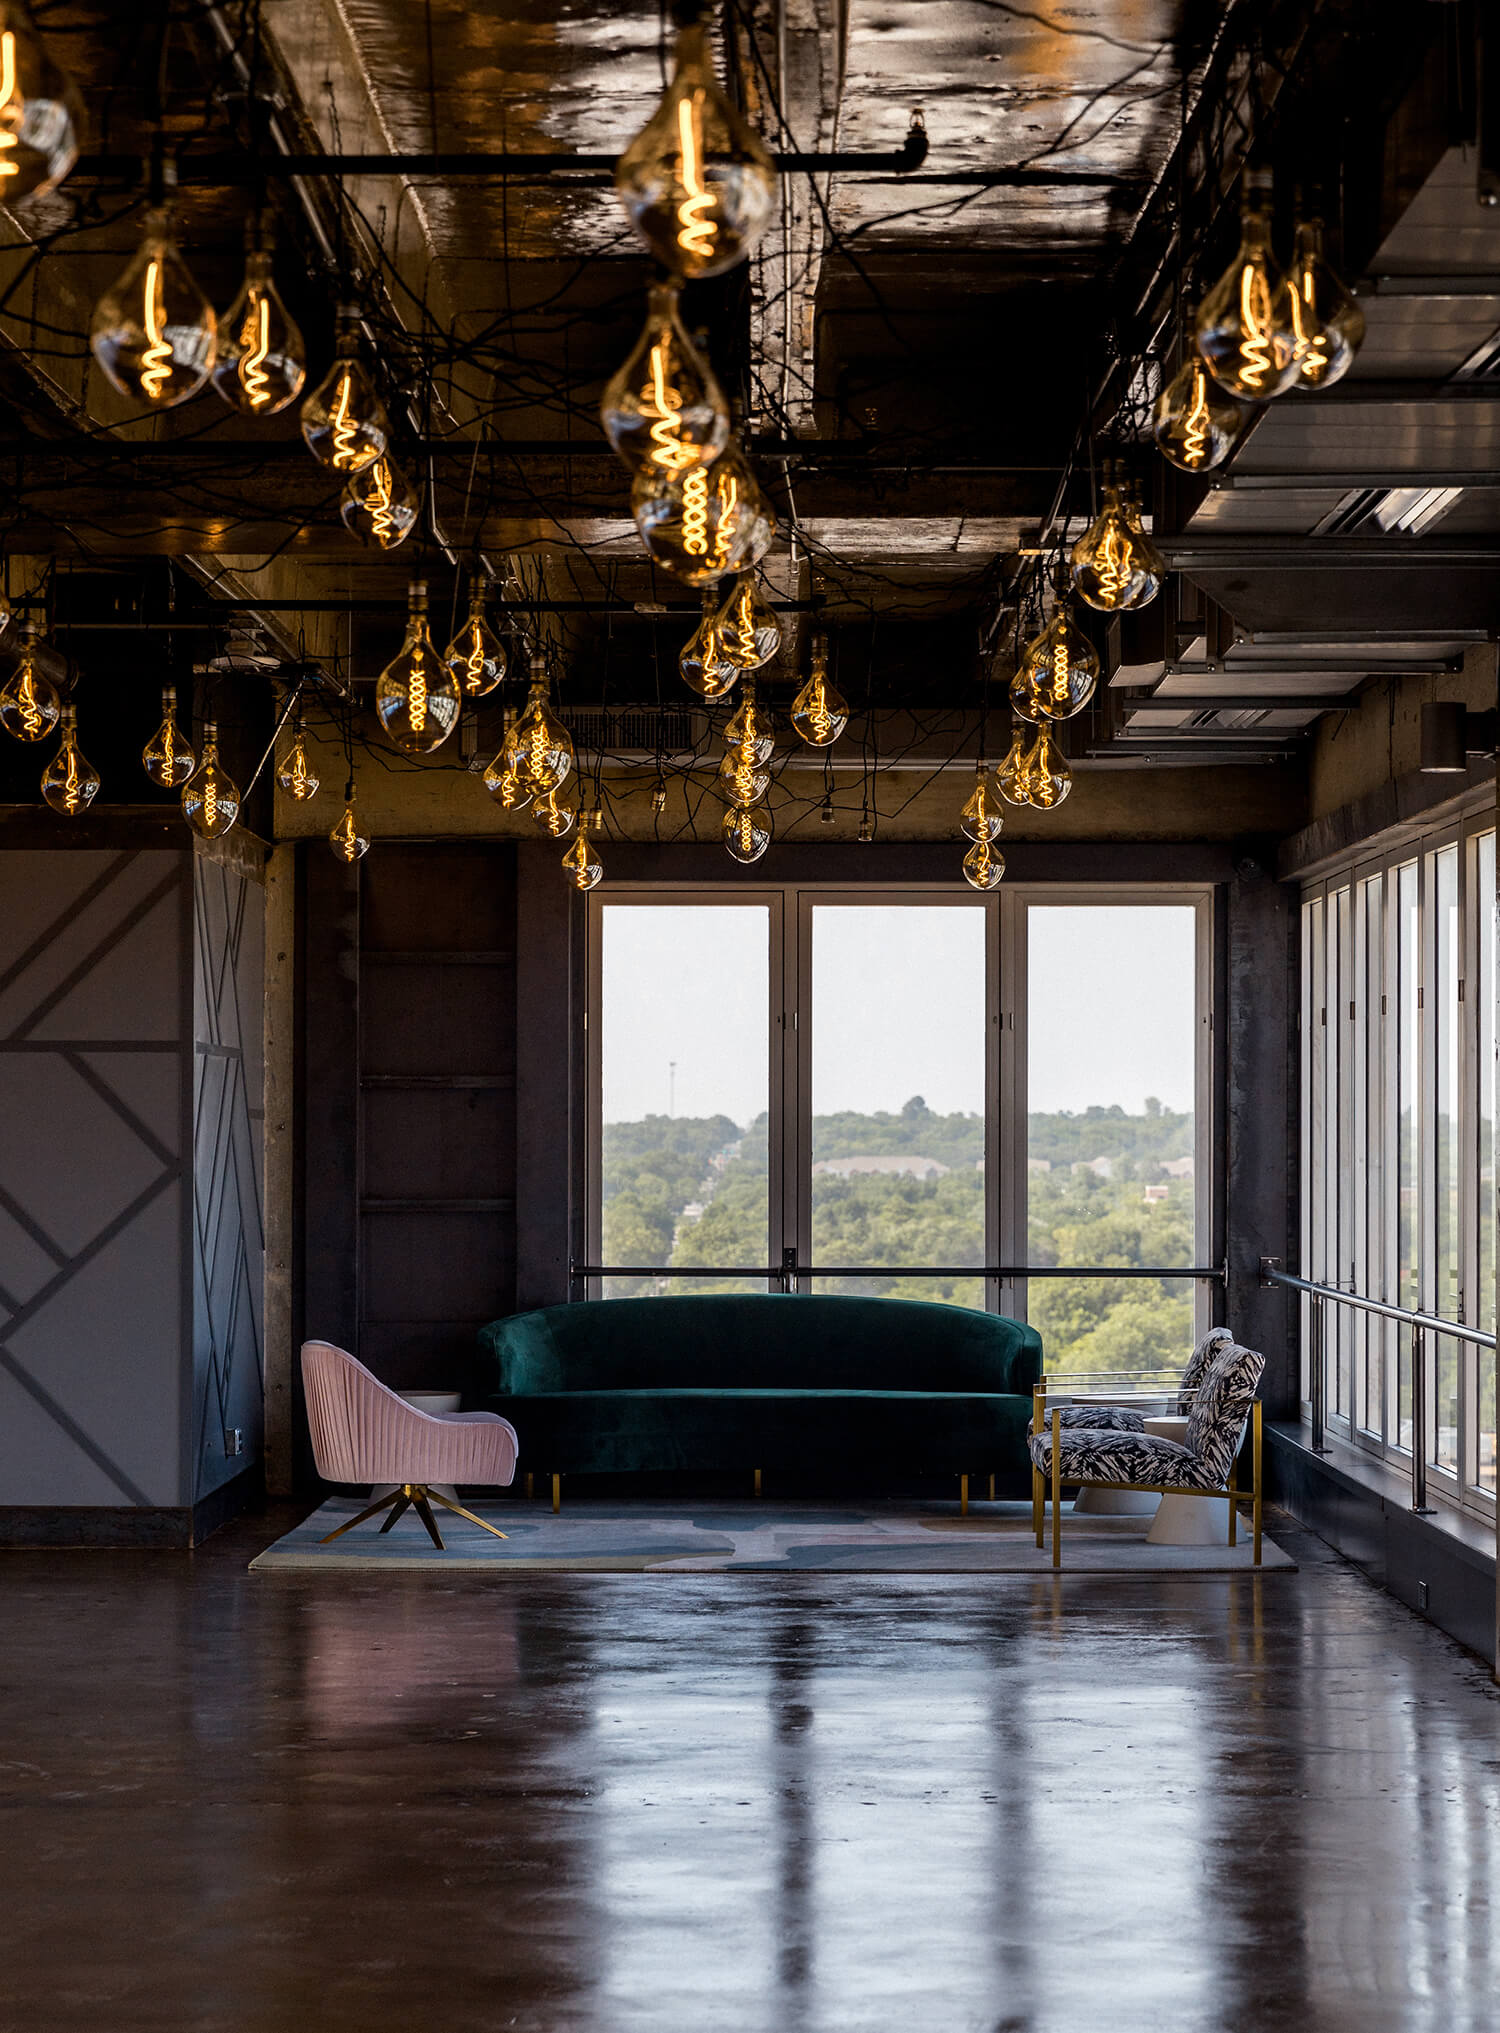 The lounge area of Sunago Bell event venue featuring posh, modern chairs and a couch, tucked away under twinkling Edison bulbs.